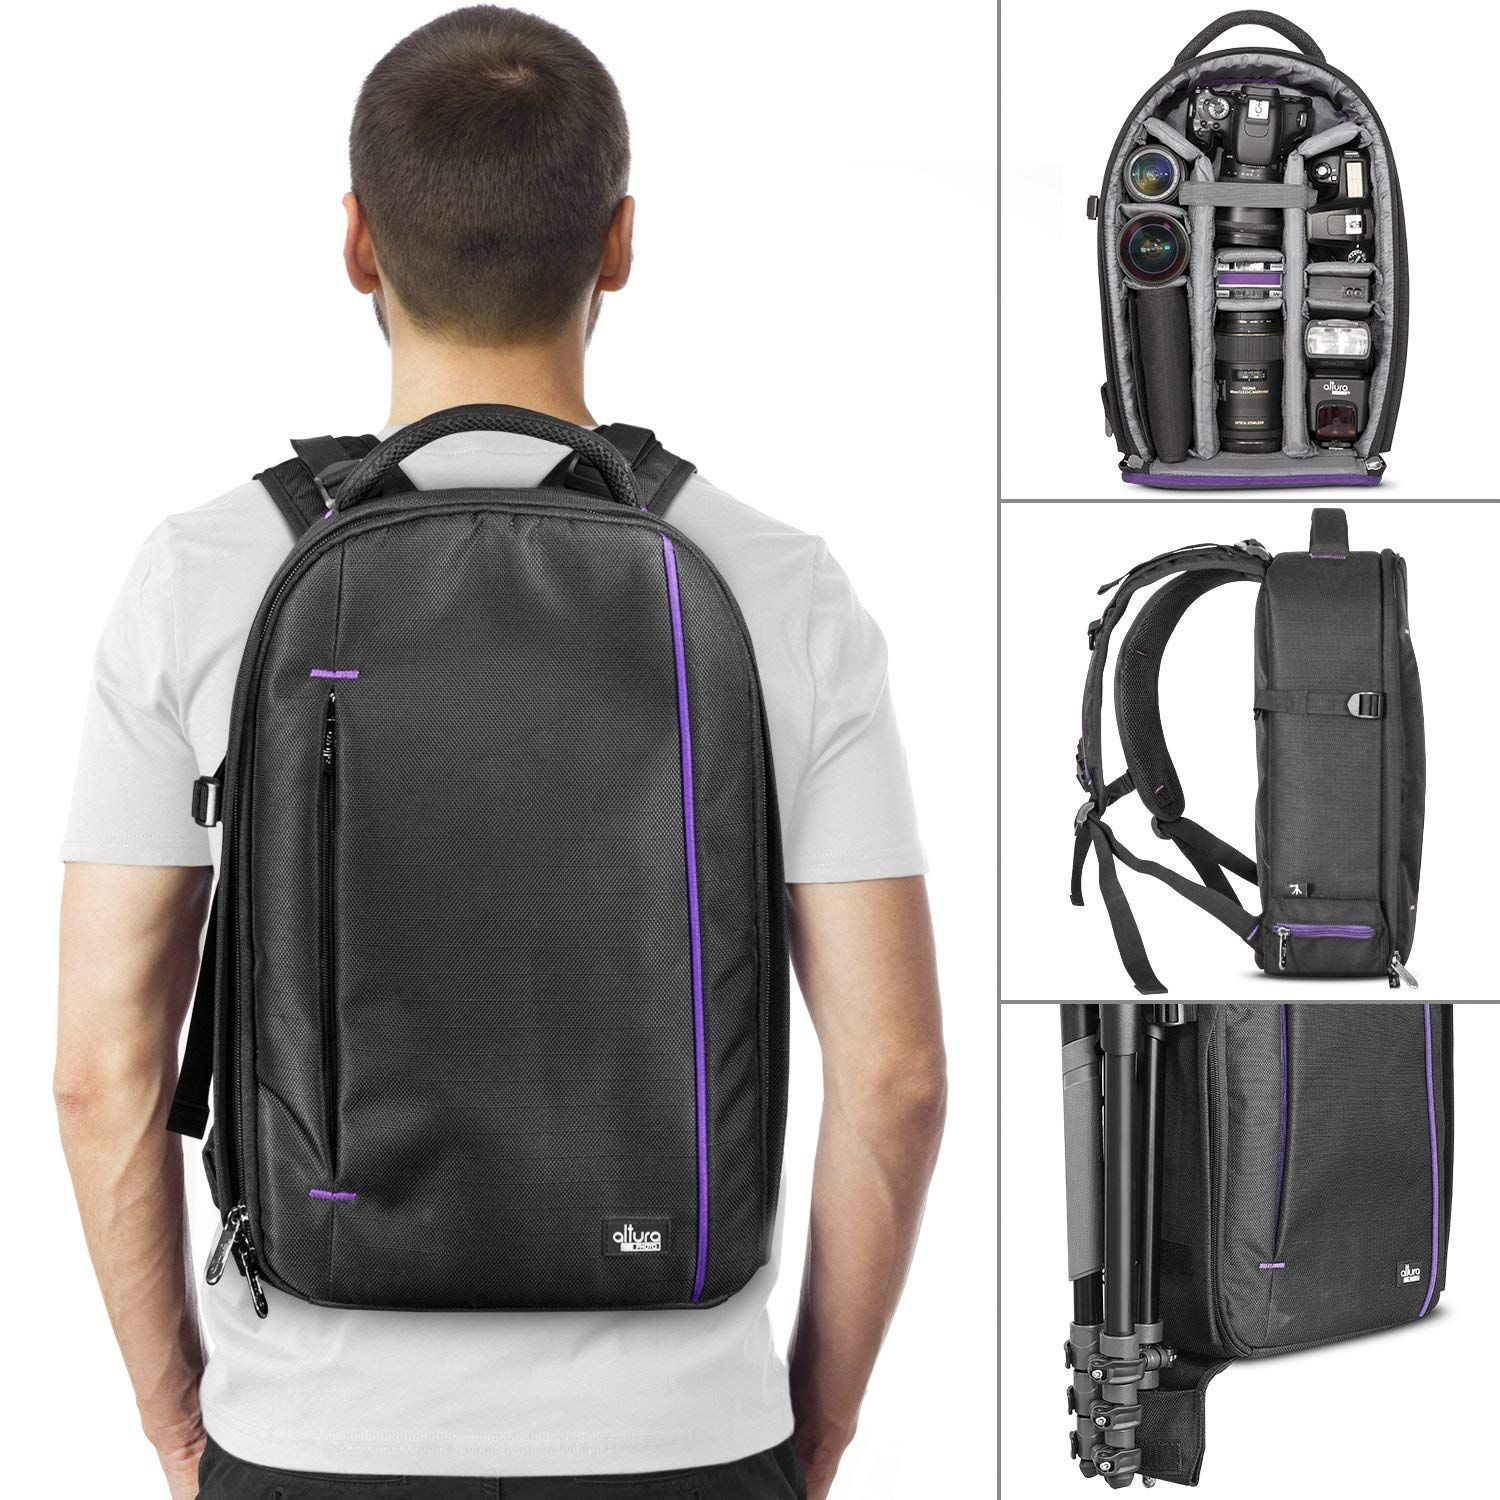 3d7f1fcb6e Top 10 Best Waterproof Camera Backpacks Review